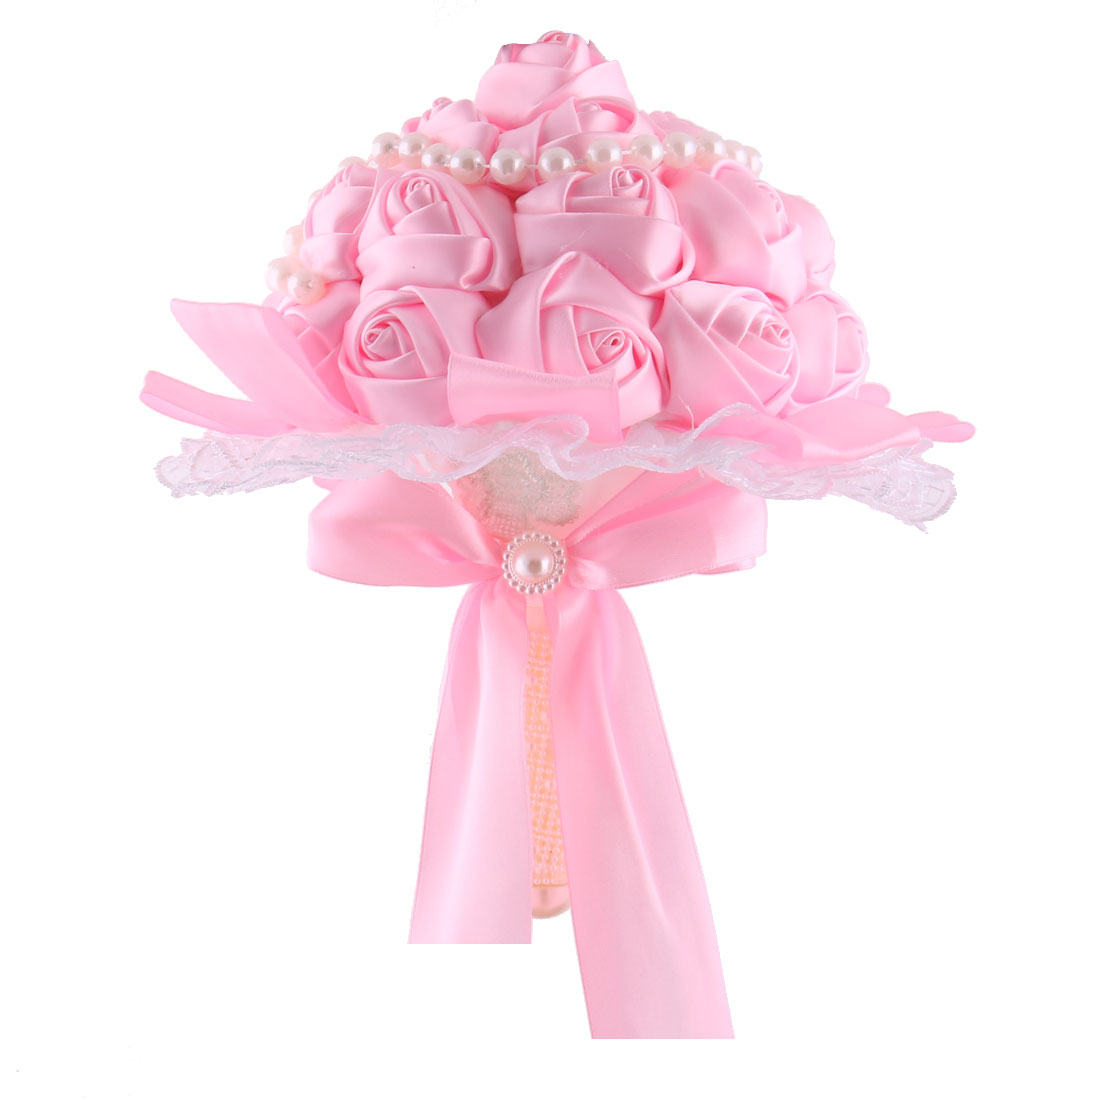 Wedding Bridesmaid Polyester Bowknot Decor Flower Handhold Bouquet Pink 9 Inch Dia